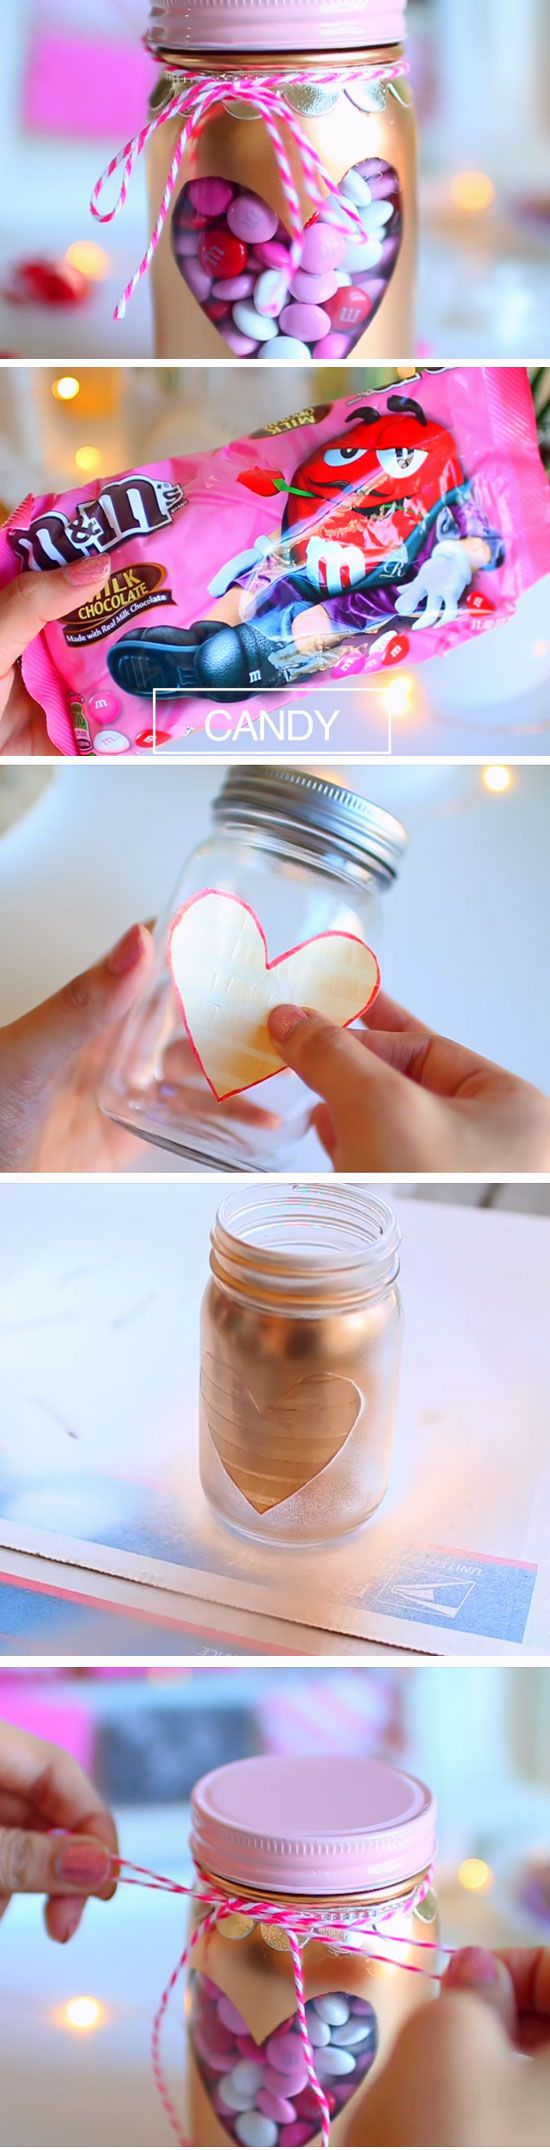 Candy Jar | DIY Valentines Day Gifts for Him | Cheap Valentines Ideas for Boyfriends